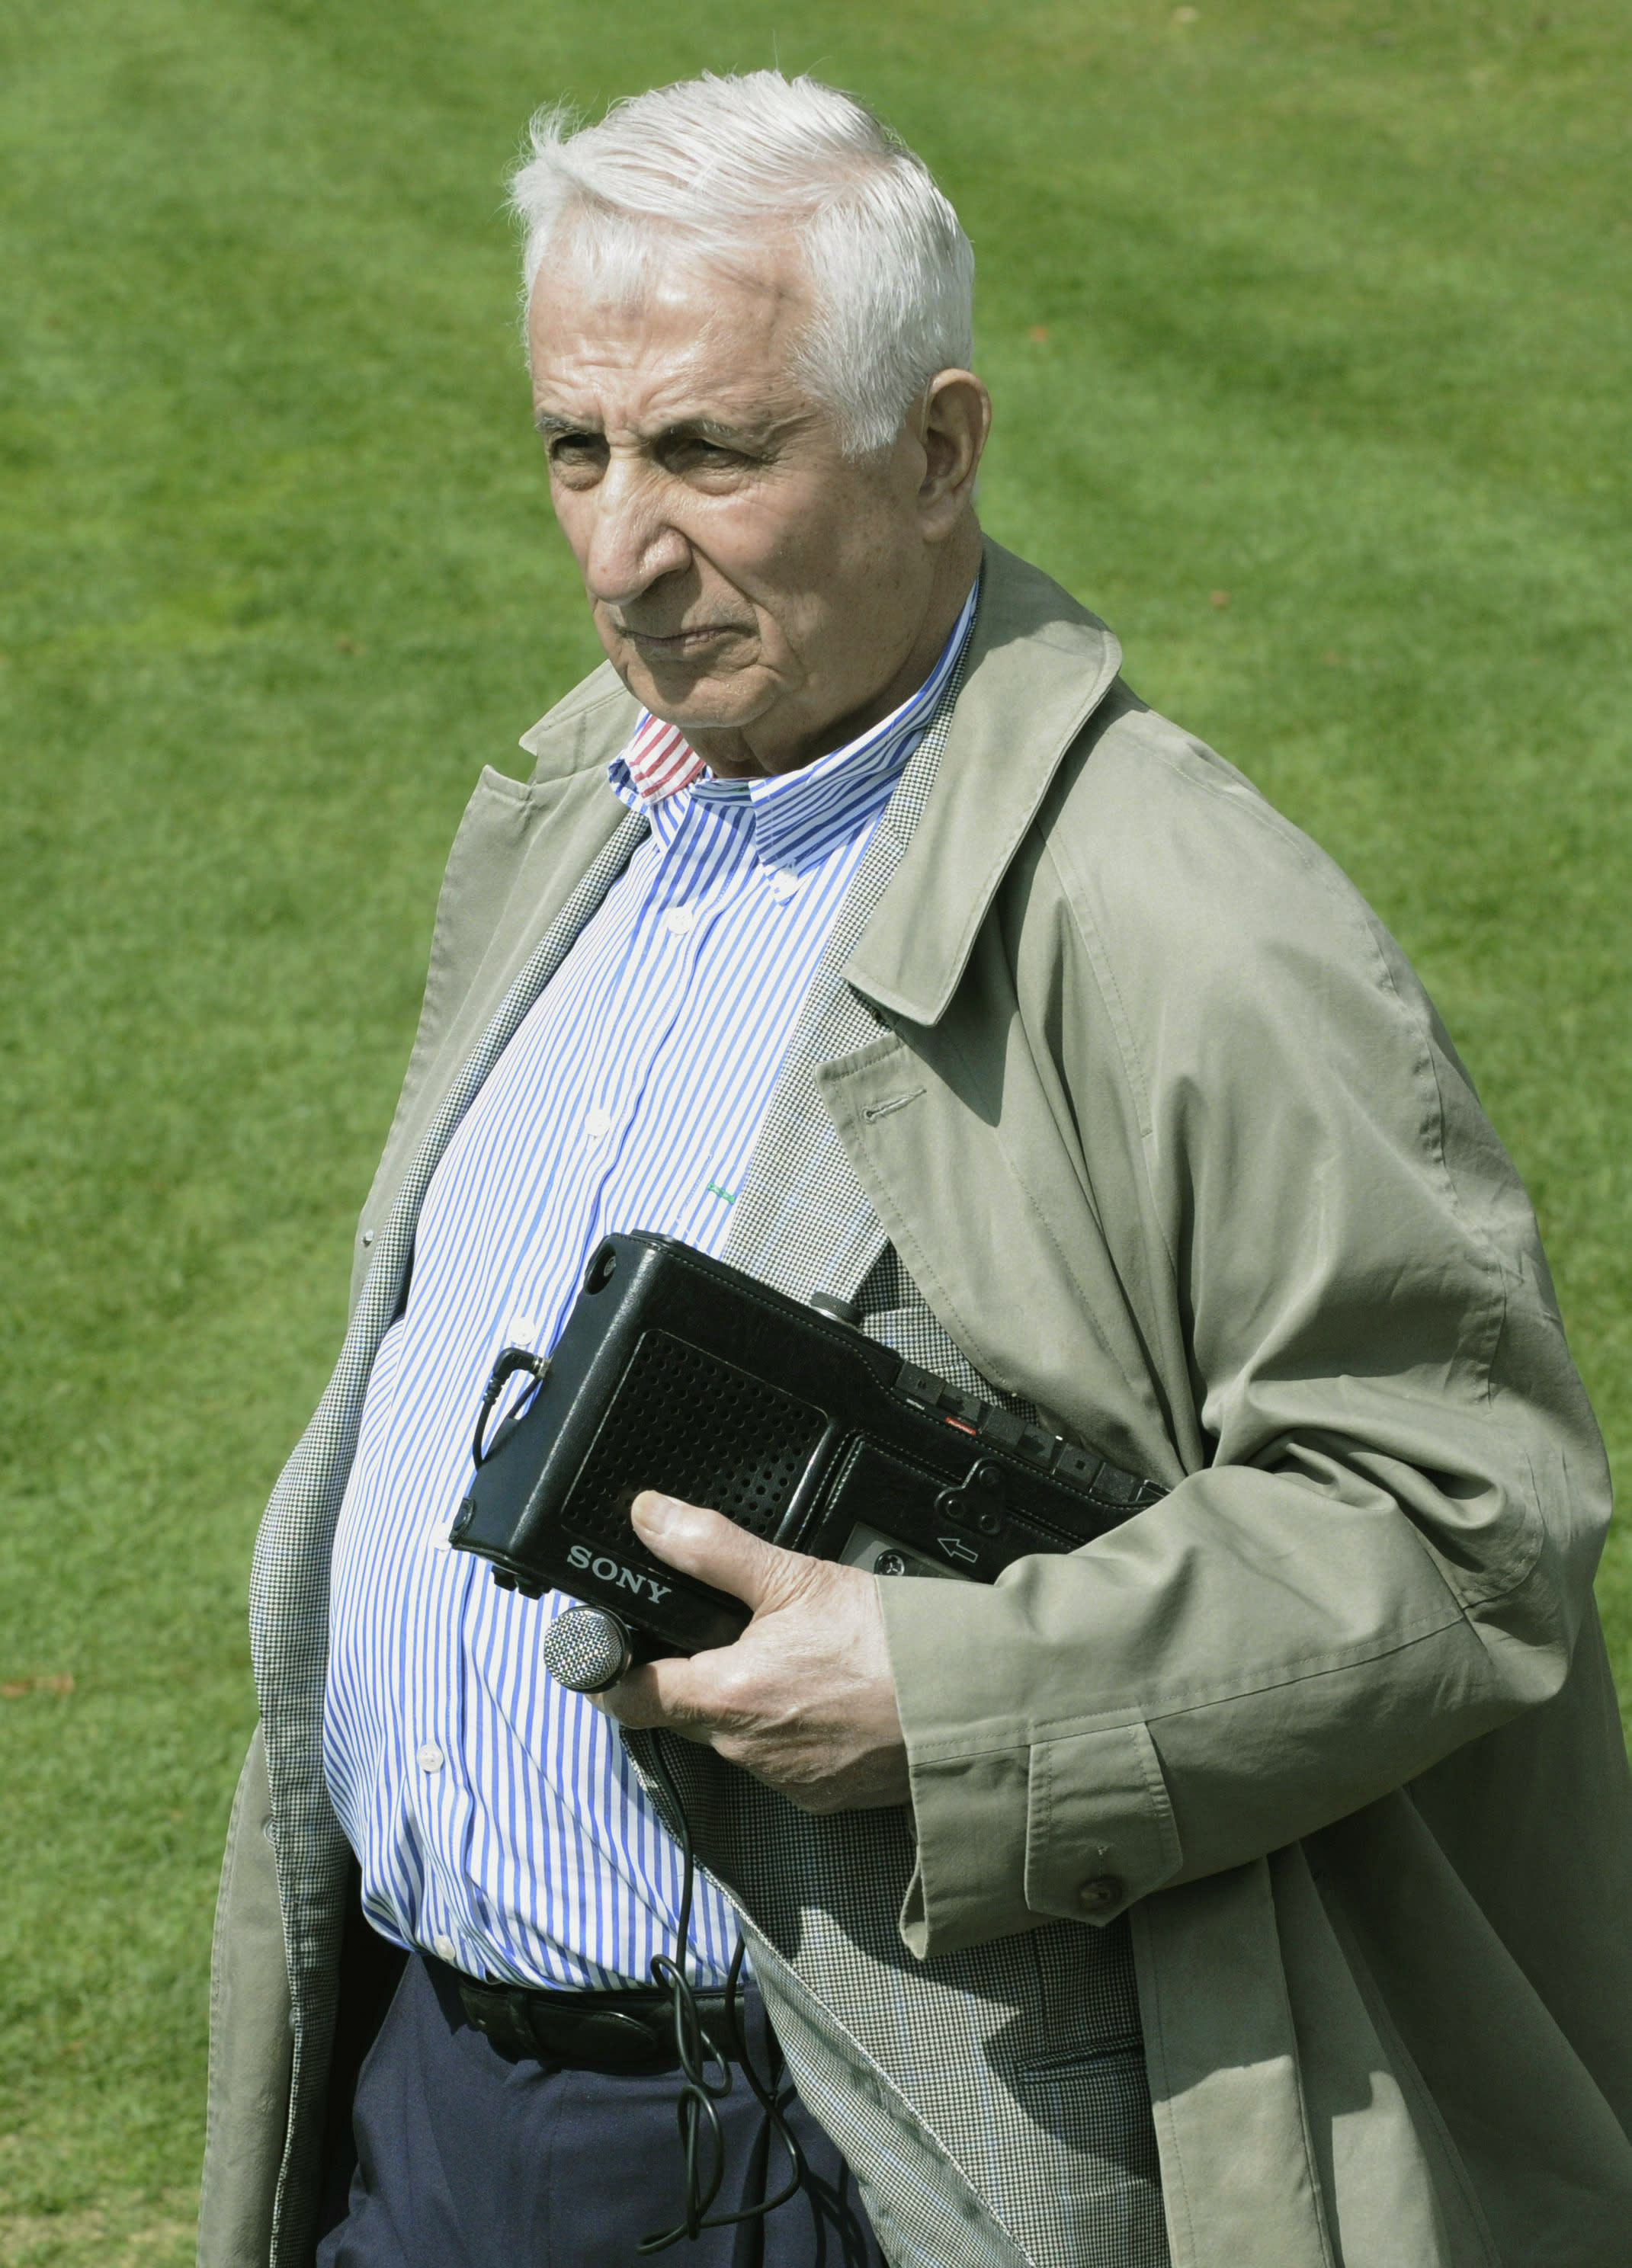 File-In this May 1, 2009, file photo Minneapolis Star Tribune columnist Sid Hartman is shown at the Minnesota Vikings football rookie minicamp in Eden Prairie, Minn. The Minnesota sports columnist and radio personality, Hartman, an old-school home team booster who once ran the NBA's Minneapolis Lakers and achieved nearly as much celebrity as some of the athletes he covered, died Sunday, Oct. 18, 2020. He was 100. (AP Photo/Jim Mone, File)